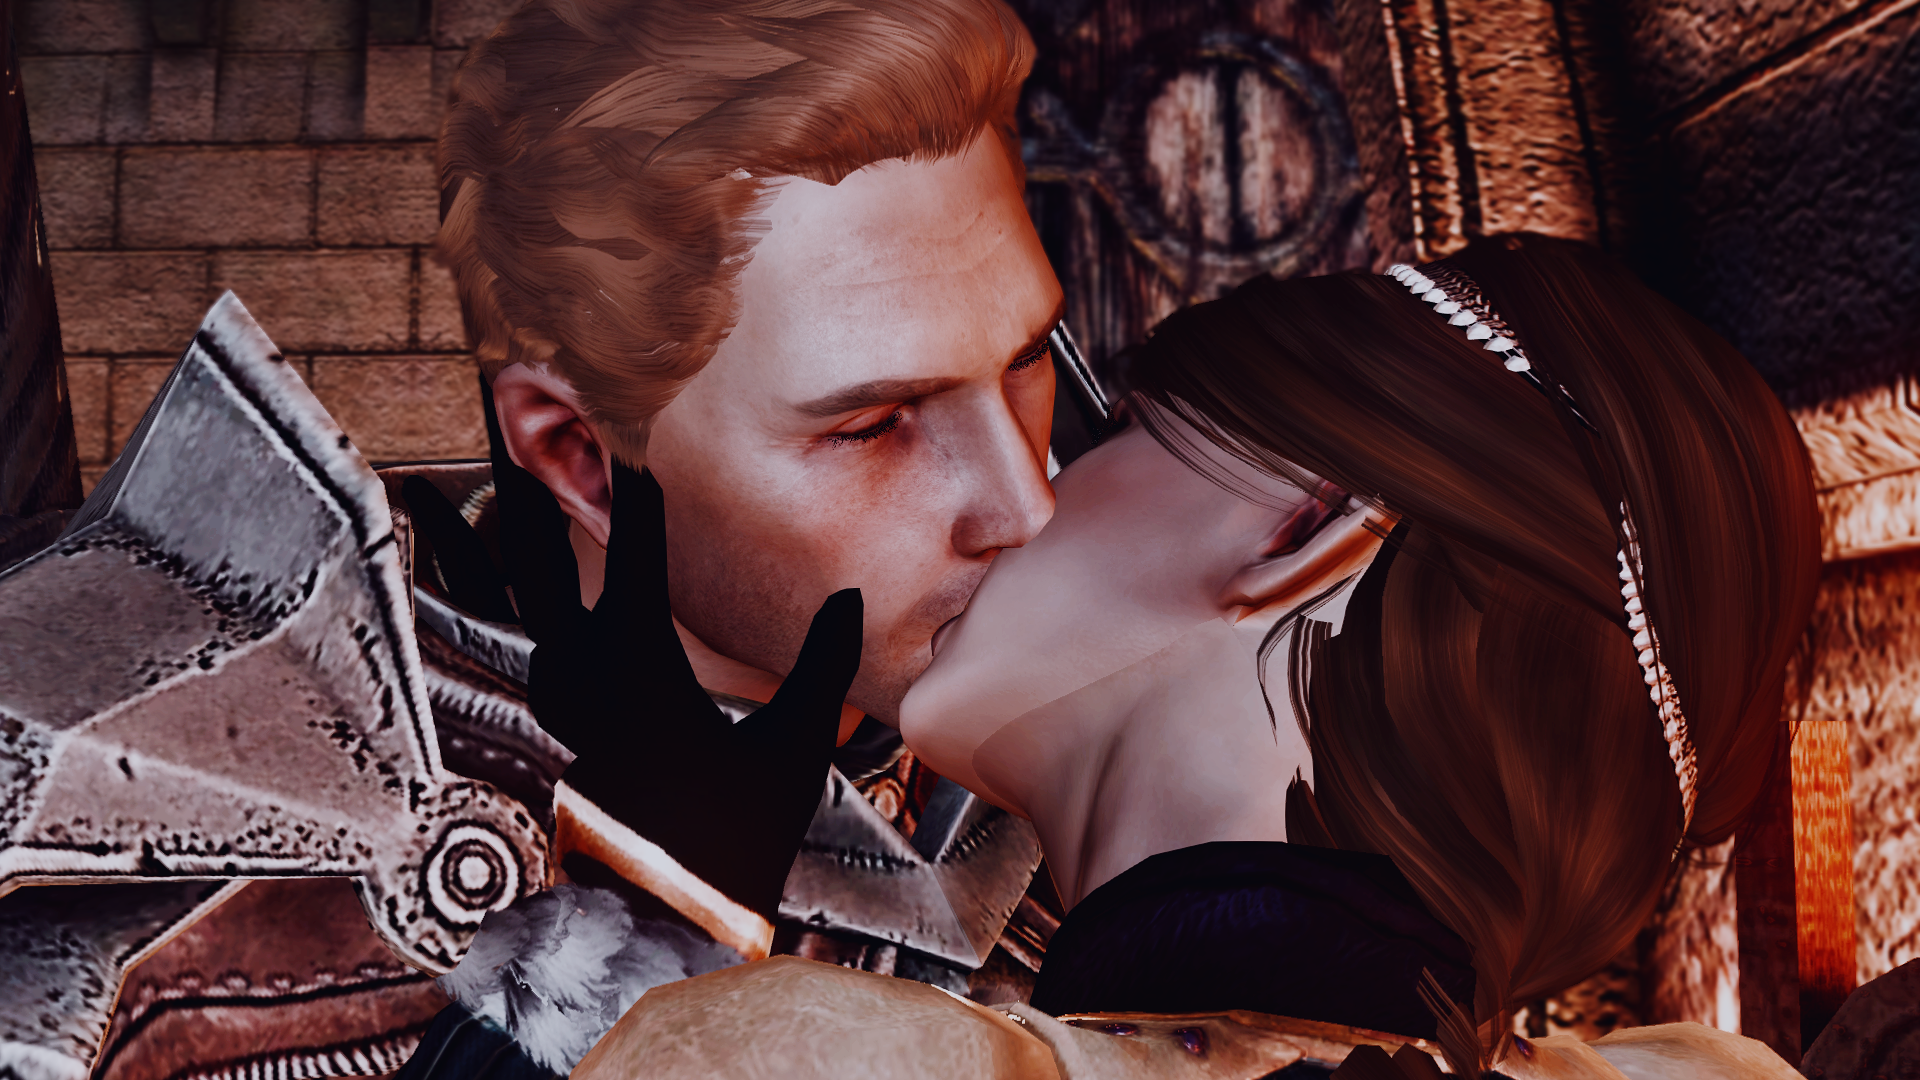 Kissing in the chapel